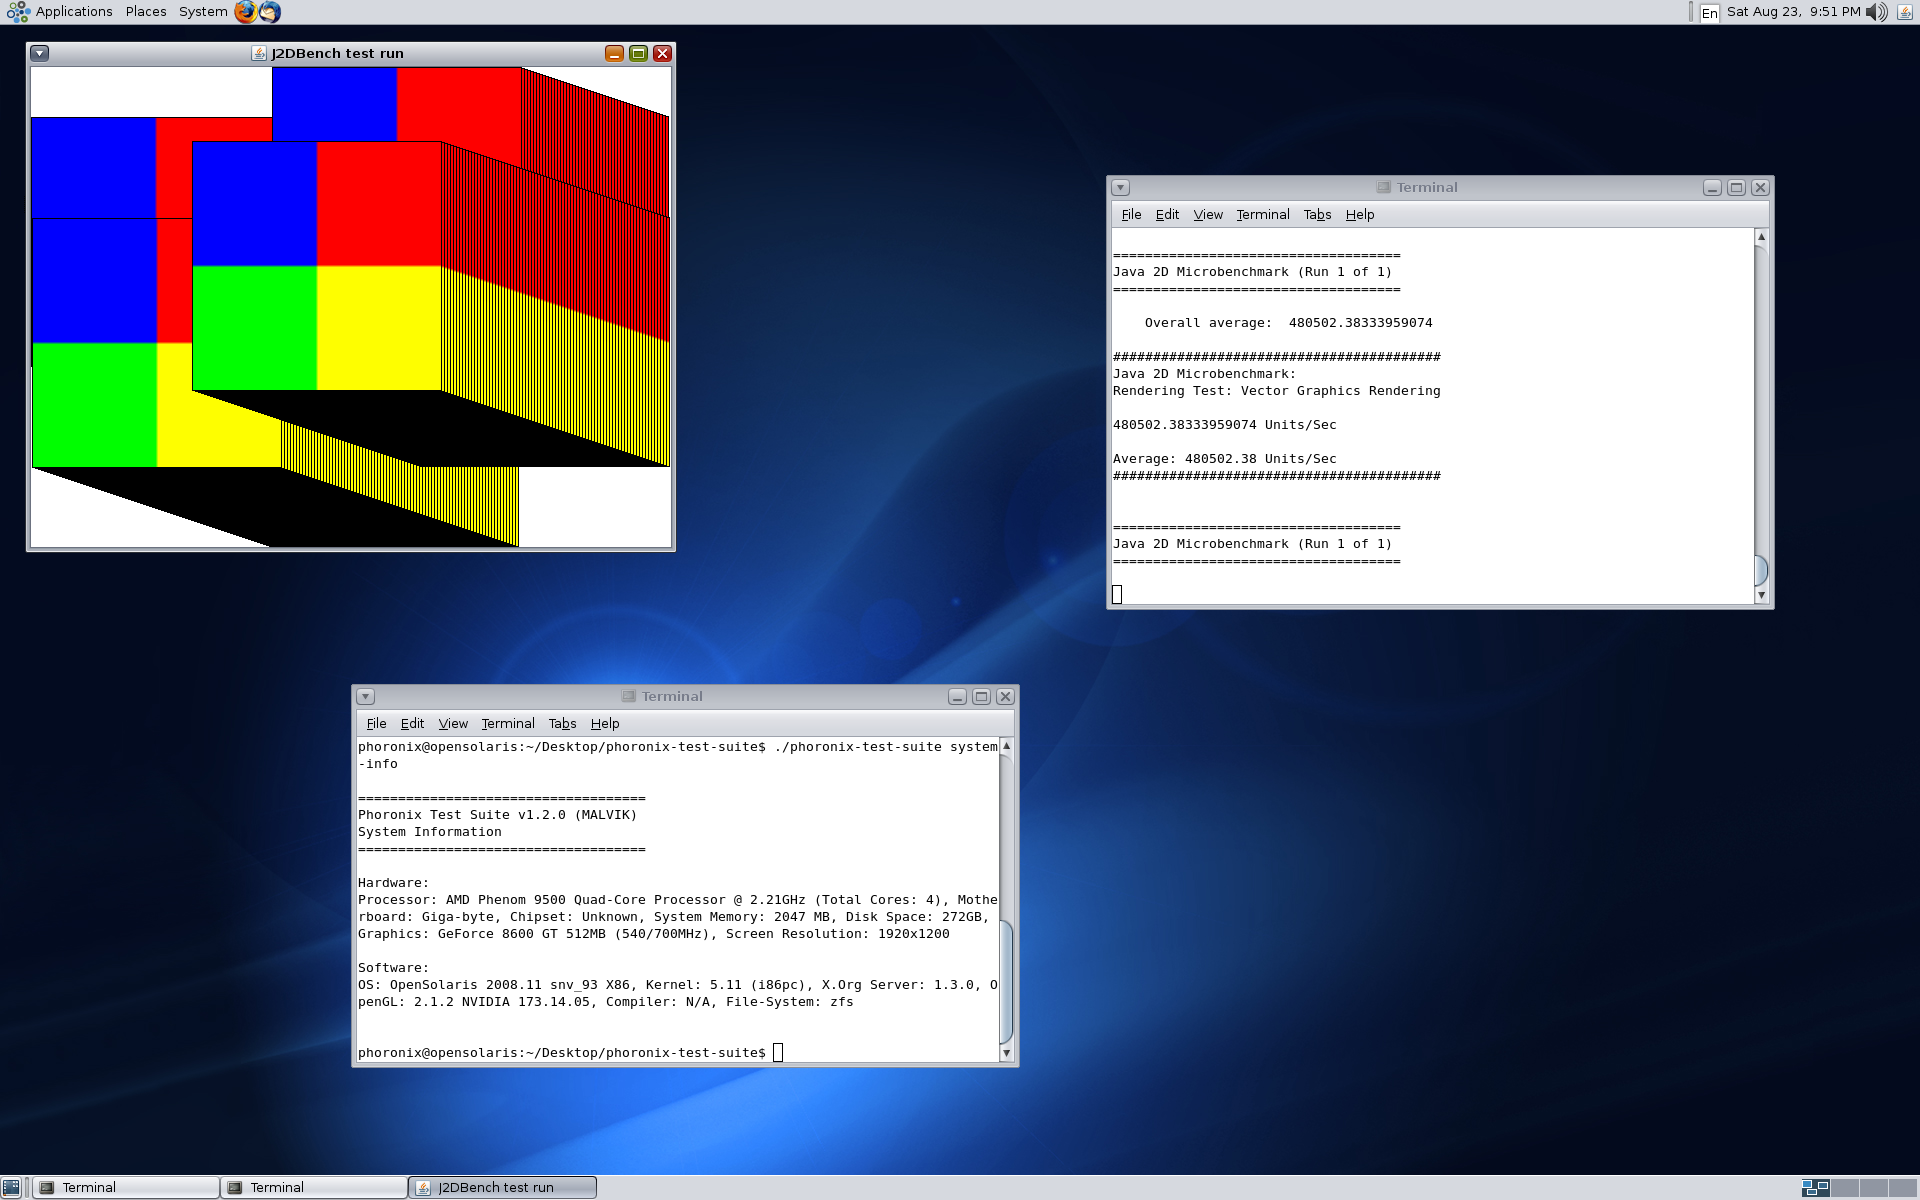 Benchmarking On Linux Reaches New Heights With Phoronix Test